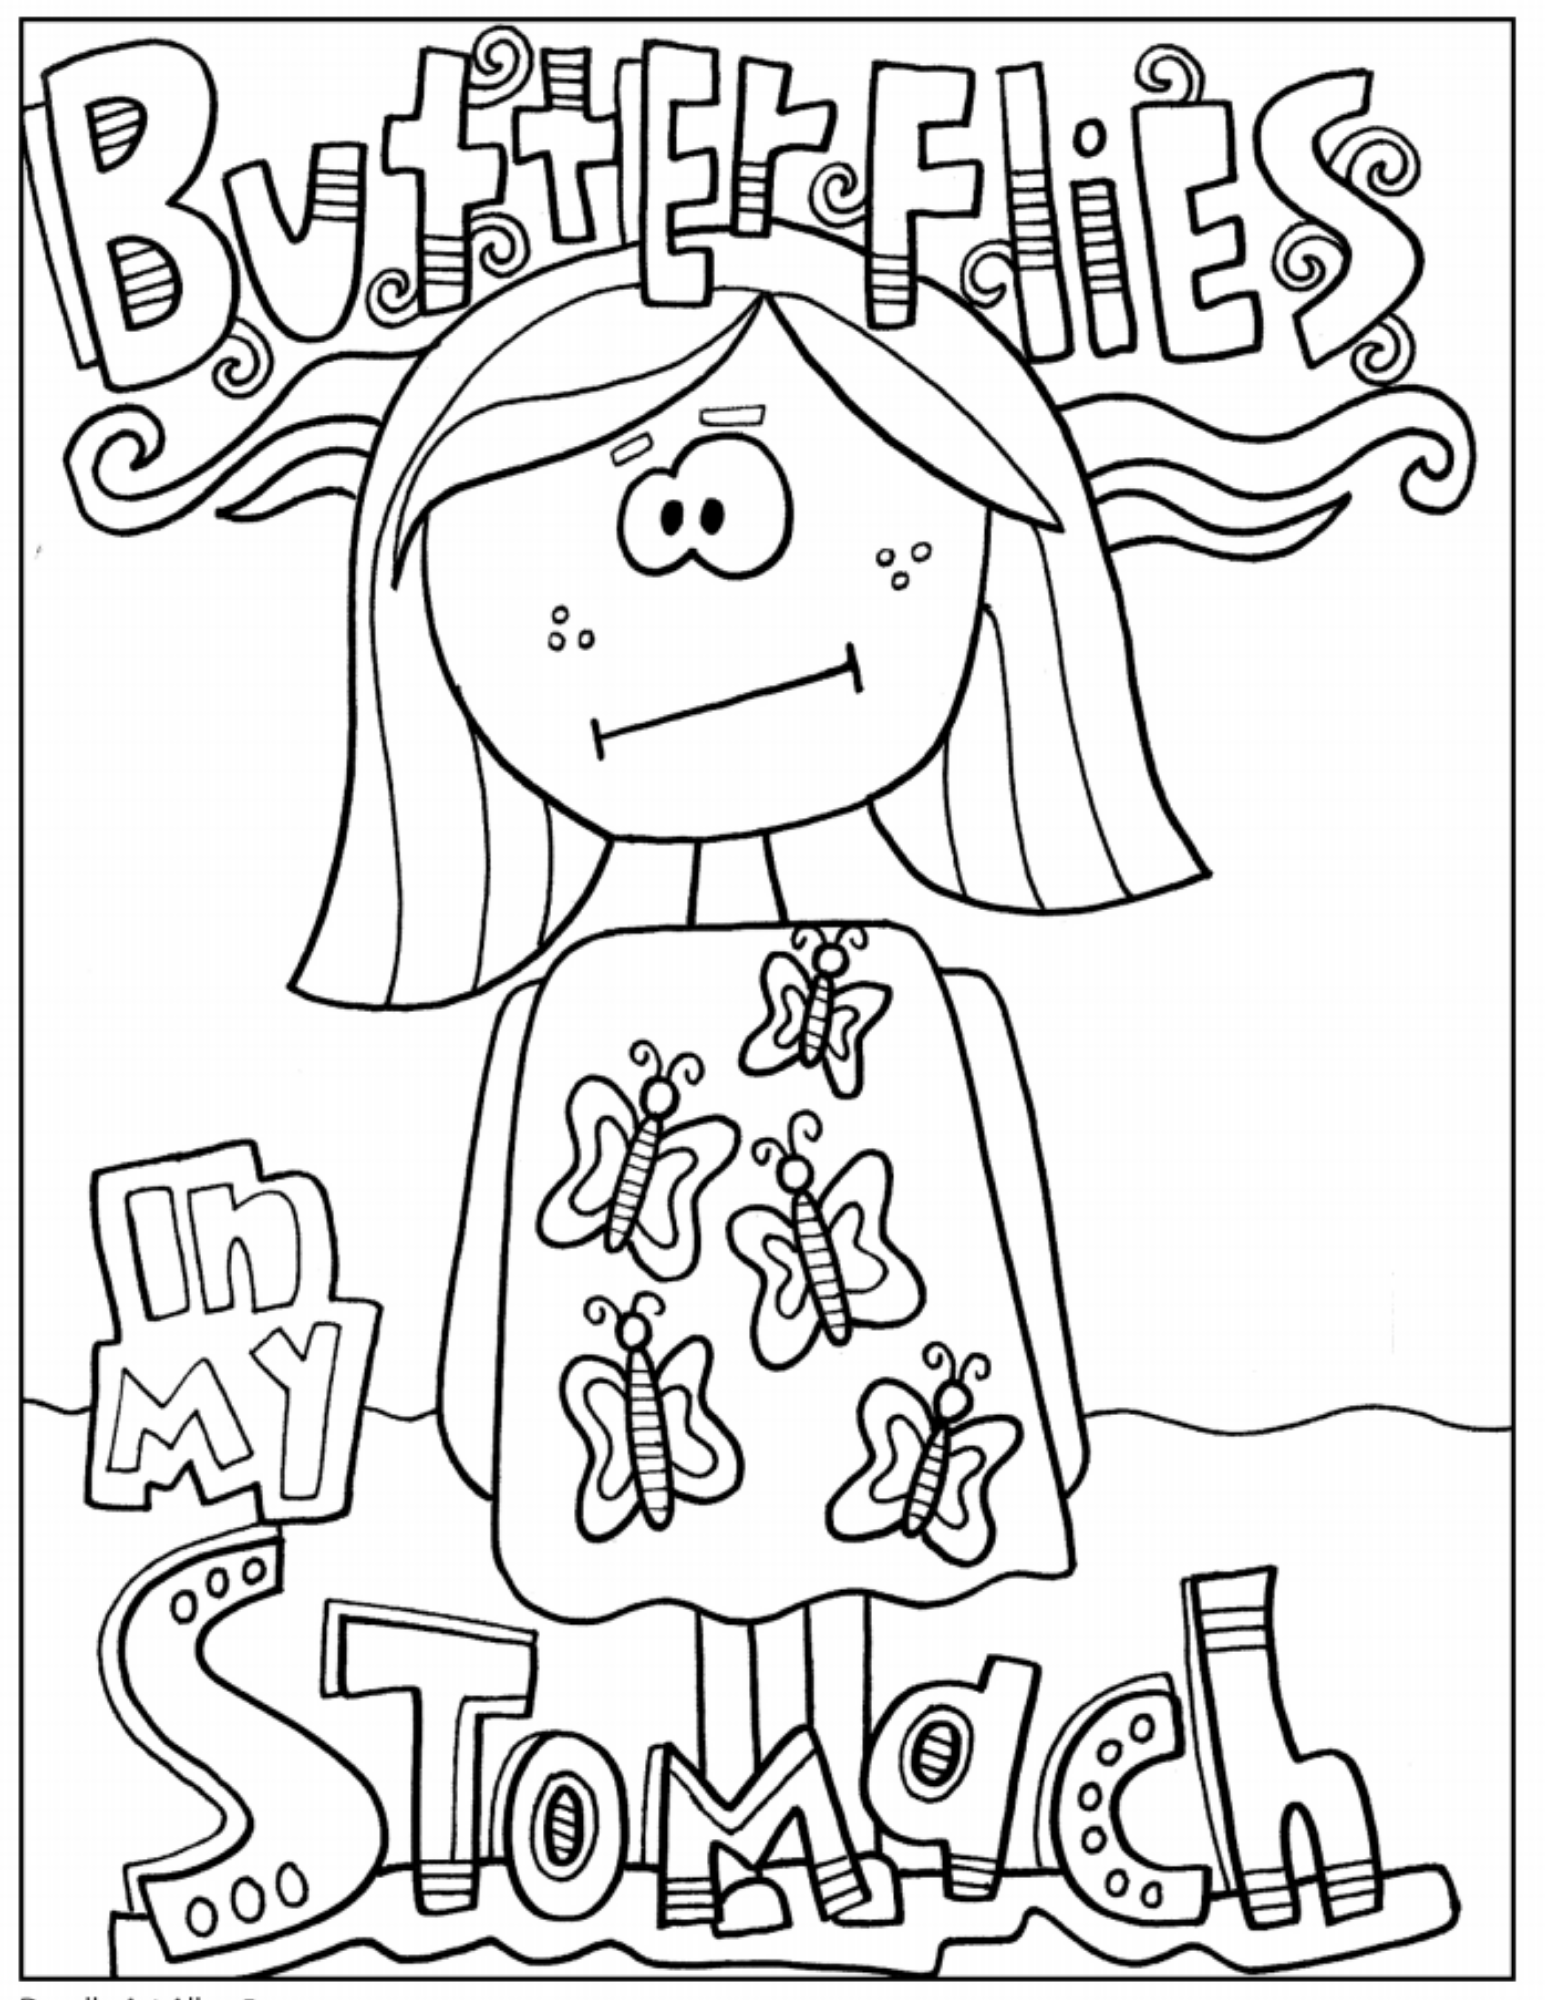 Click Here to Pick and Download Your Coloring Page!